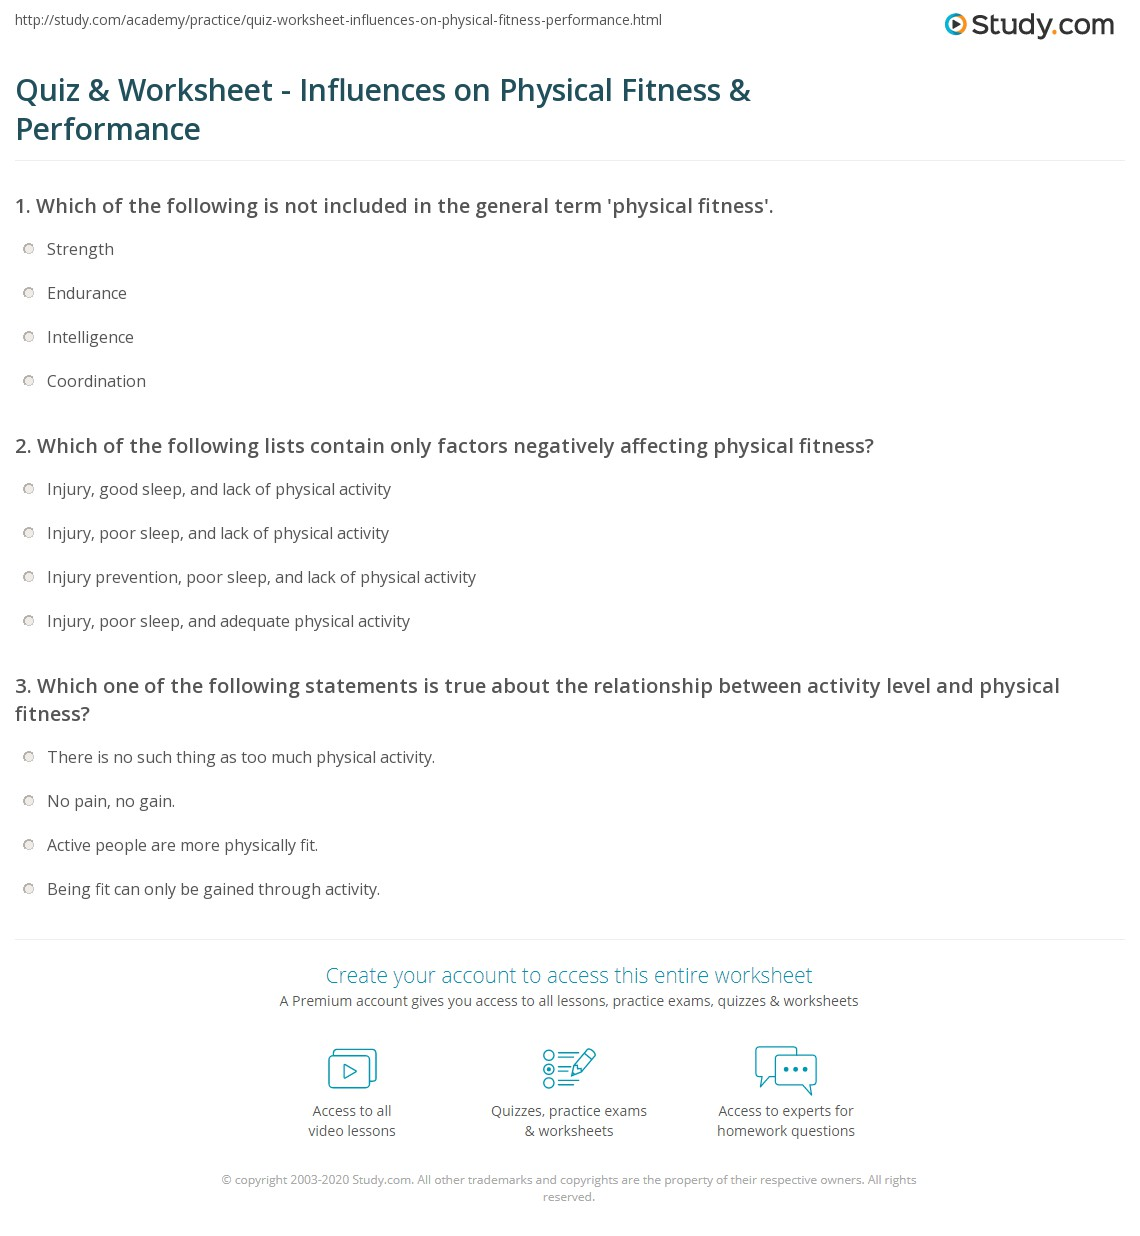 Quiz worksheet influences on physical fitness performance print factors affecting physical fitness performance worksheet xflitez Gallery